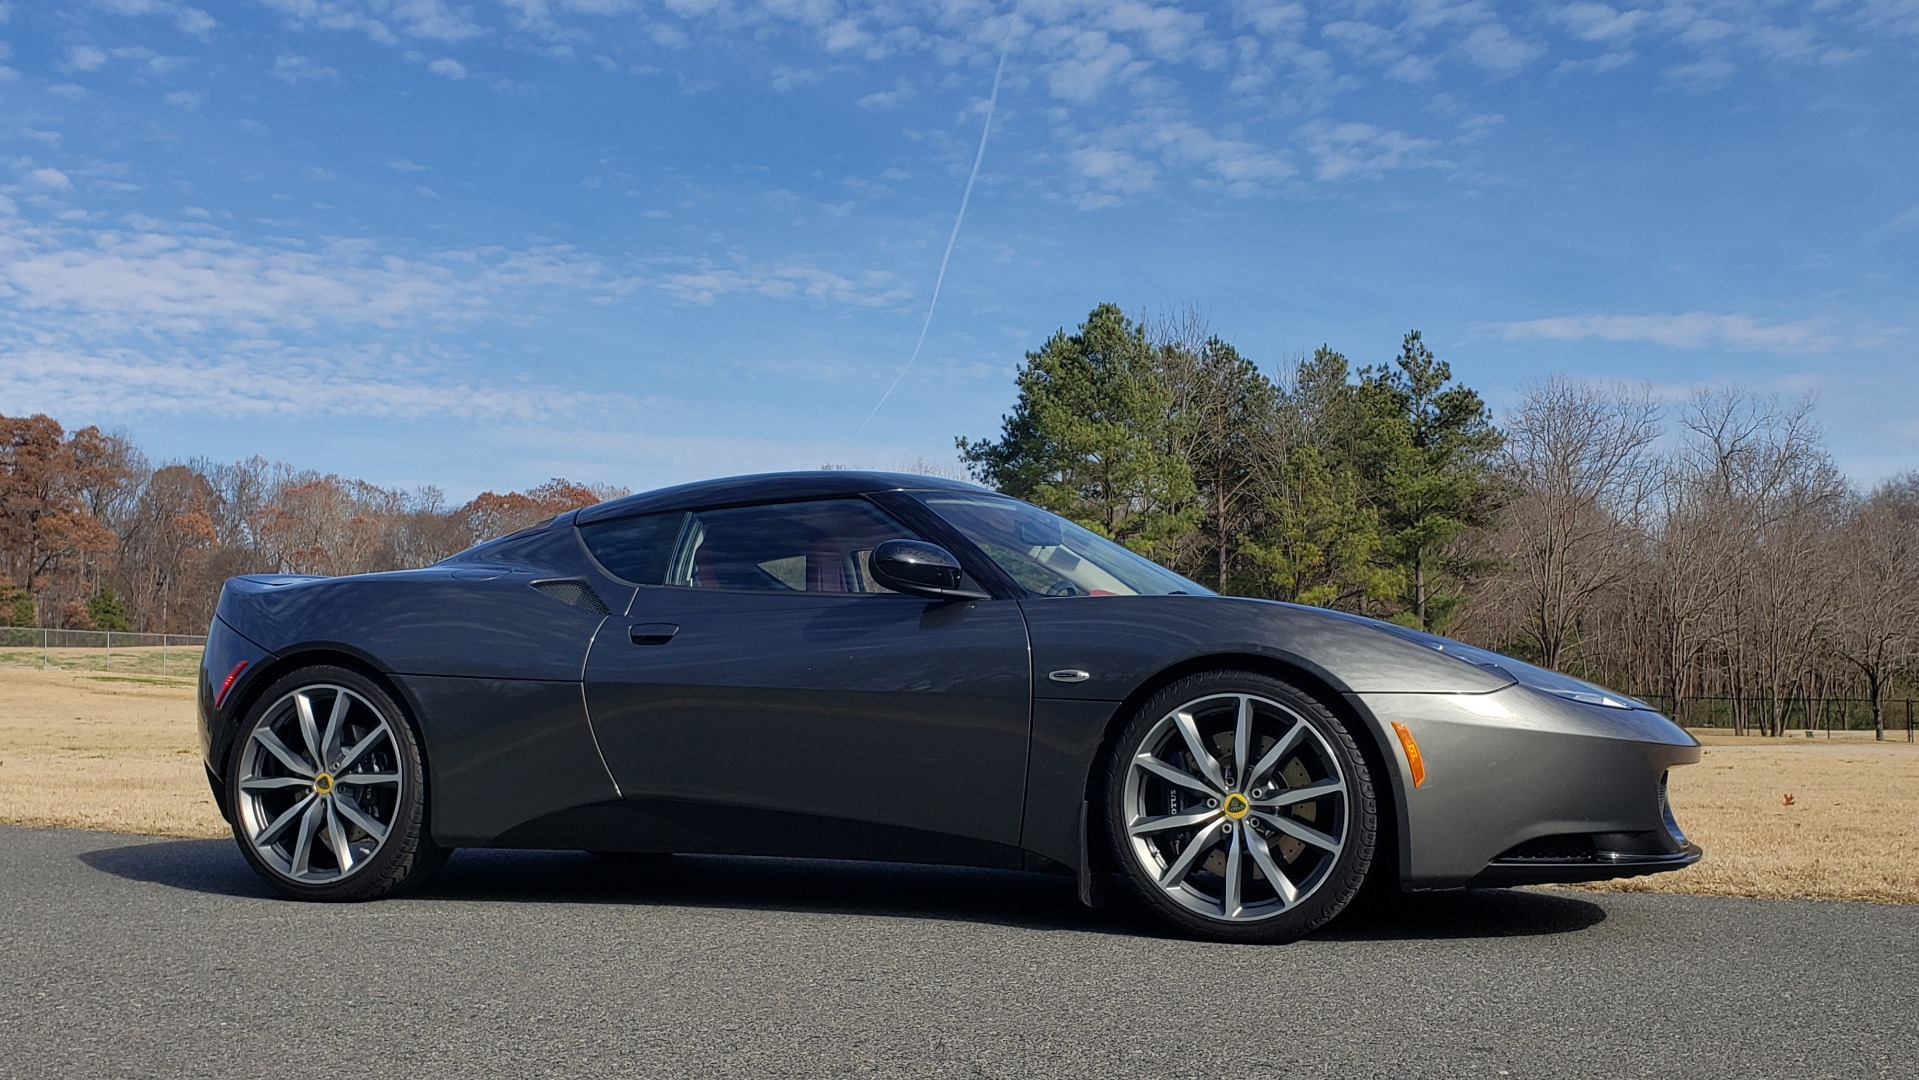 Used 2011 Lotus EVORA S 2+2 / 3.5L V6 / 6-SPD MANUAL / PIONEER / REARVIEW / LOW MILES for sale Sold at Formula Imports in Charlotte NC 28227 9